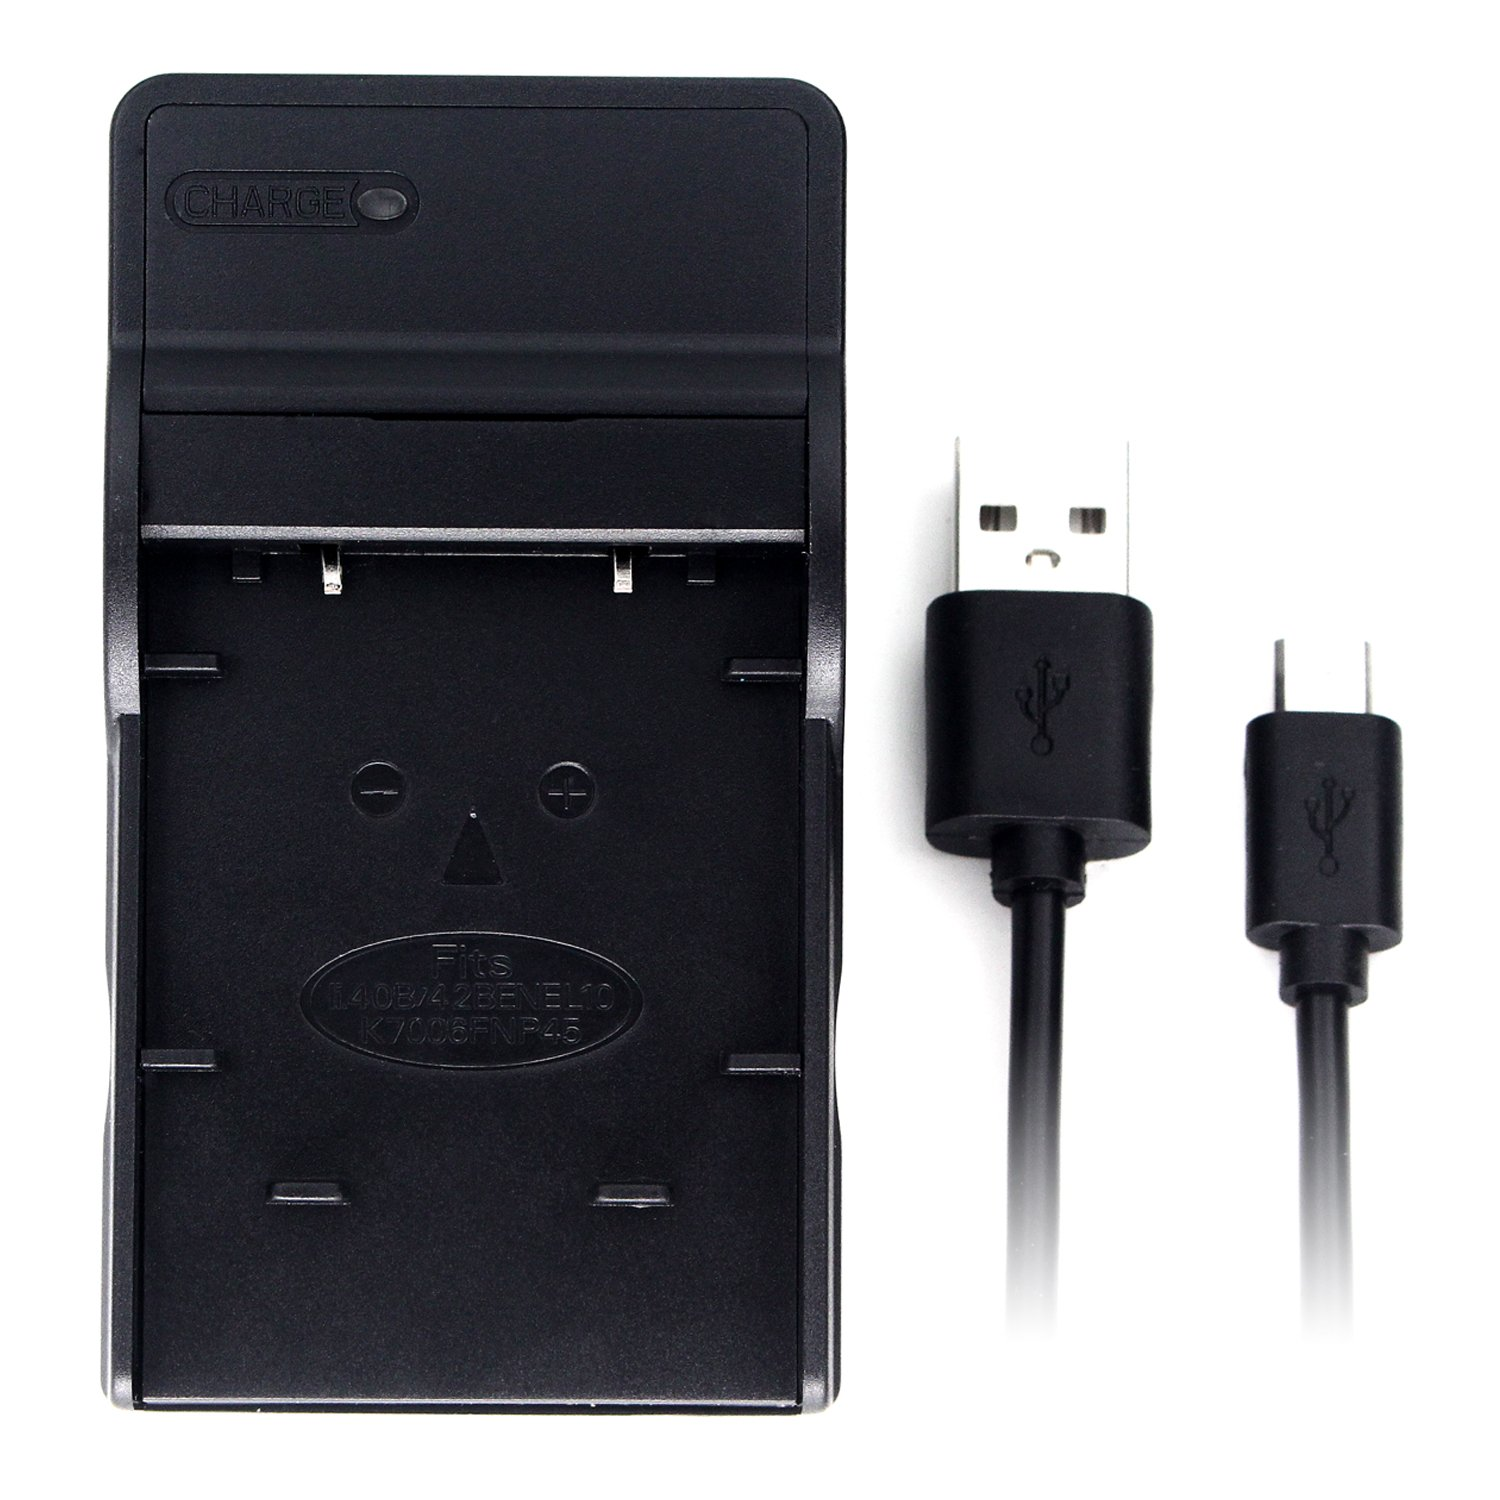 NP 45 USB Charger for Fujifilm FinePix